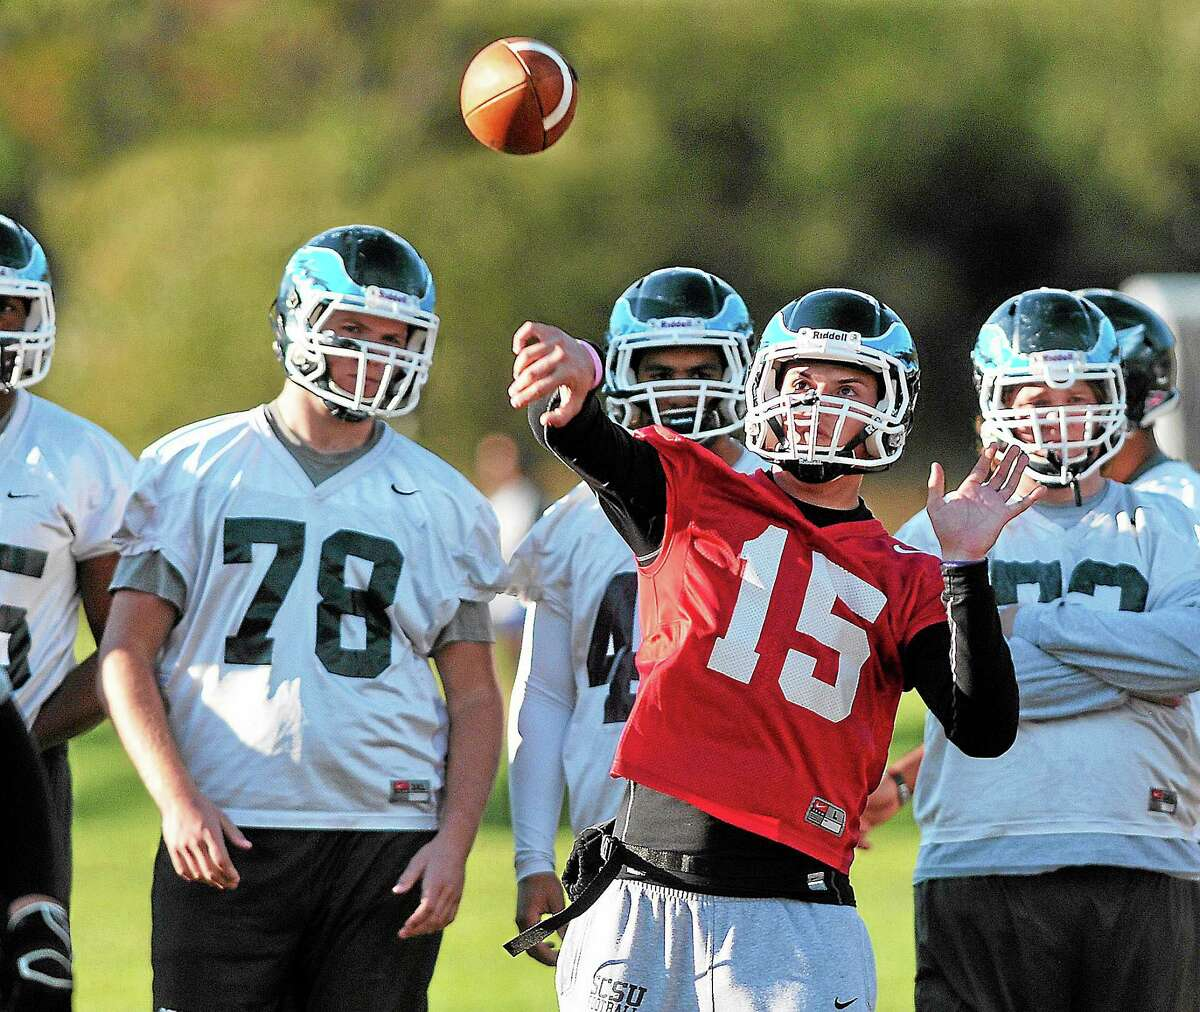 Quarterback Brandon Basil will be making his second start Friday night against New Haven.